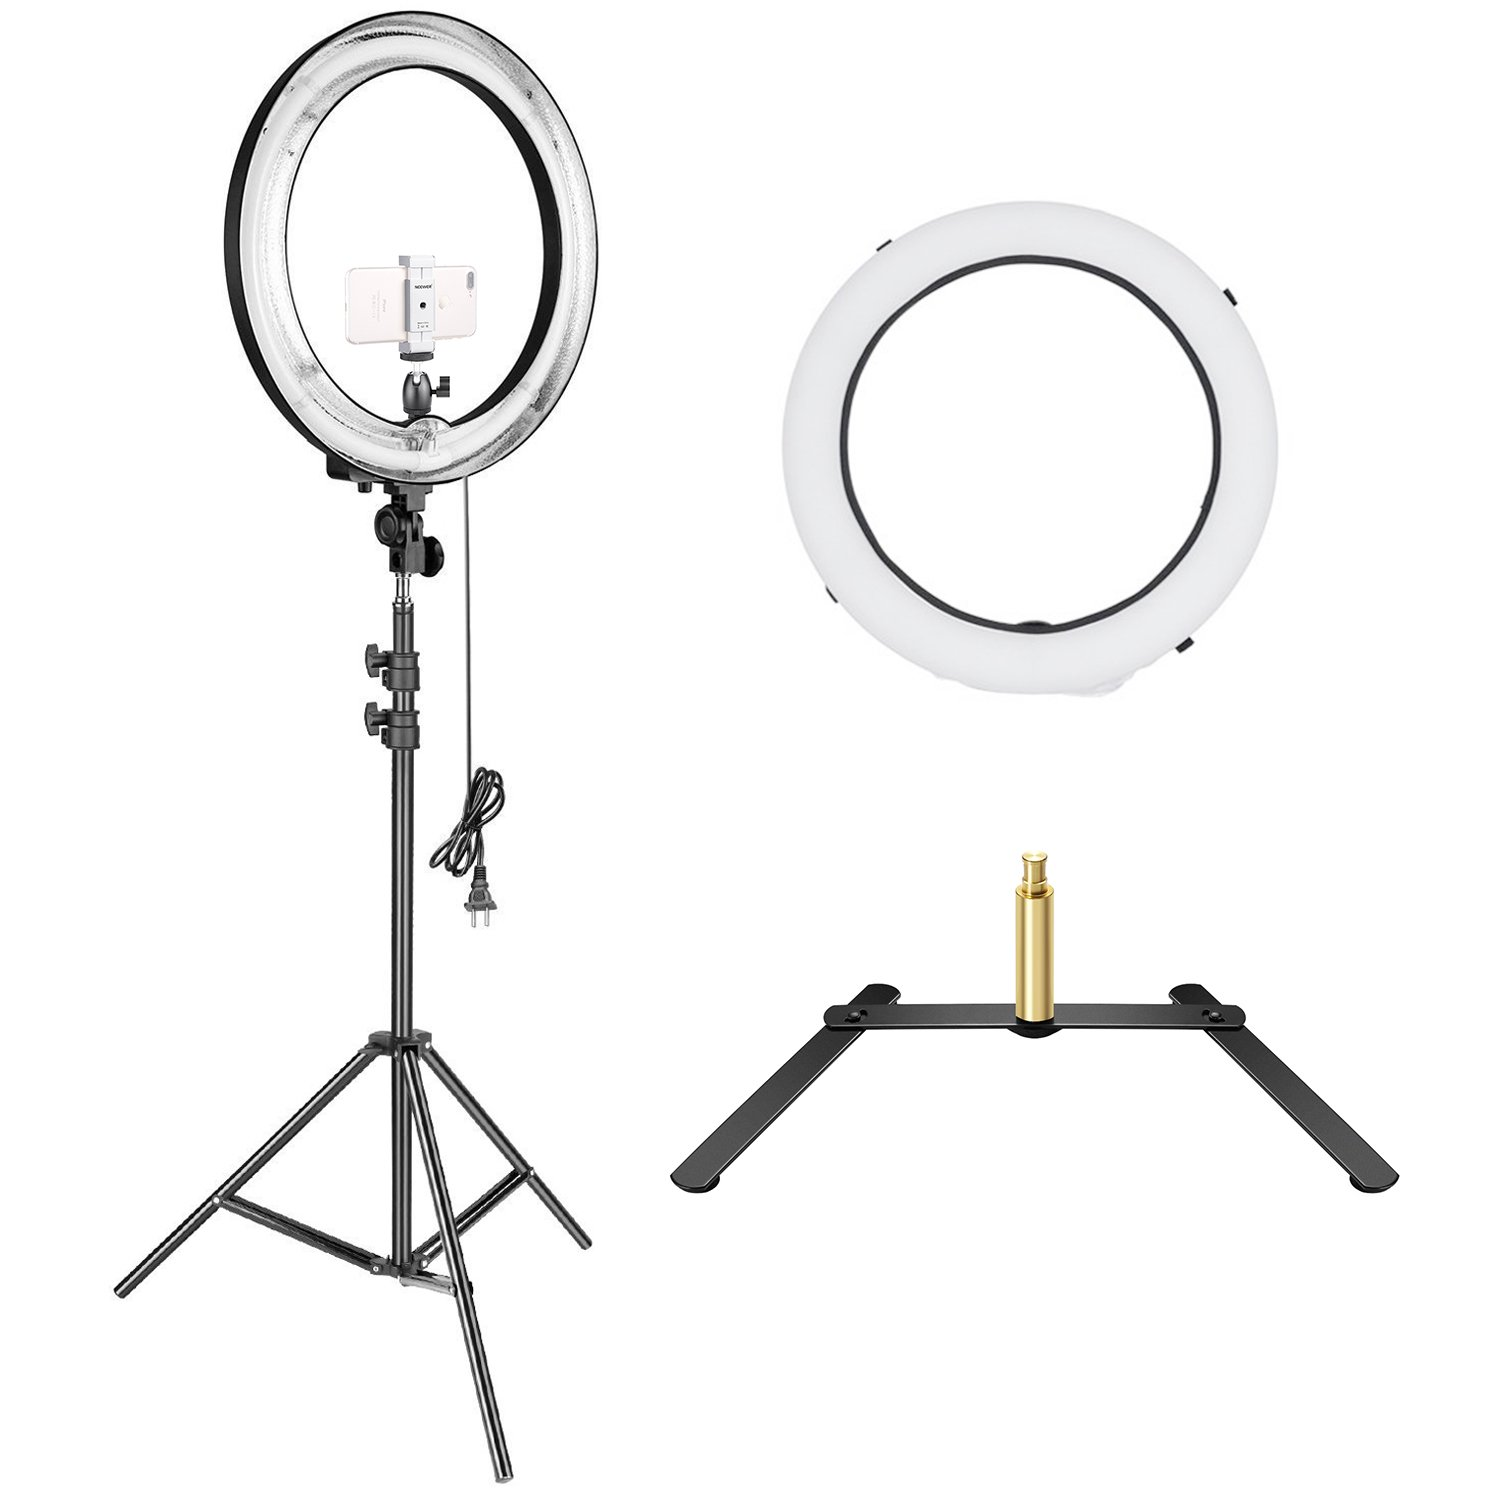 Neewer 18 inches Outer Fluorescent Ring Light Lighting Kit with Both Floor and Table-top Support Stand for Make up Studio Portrait Video Photography, Comes With Diffuser, Phone Holder and Ball Head